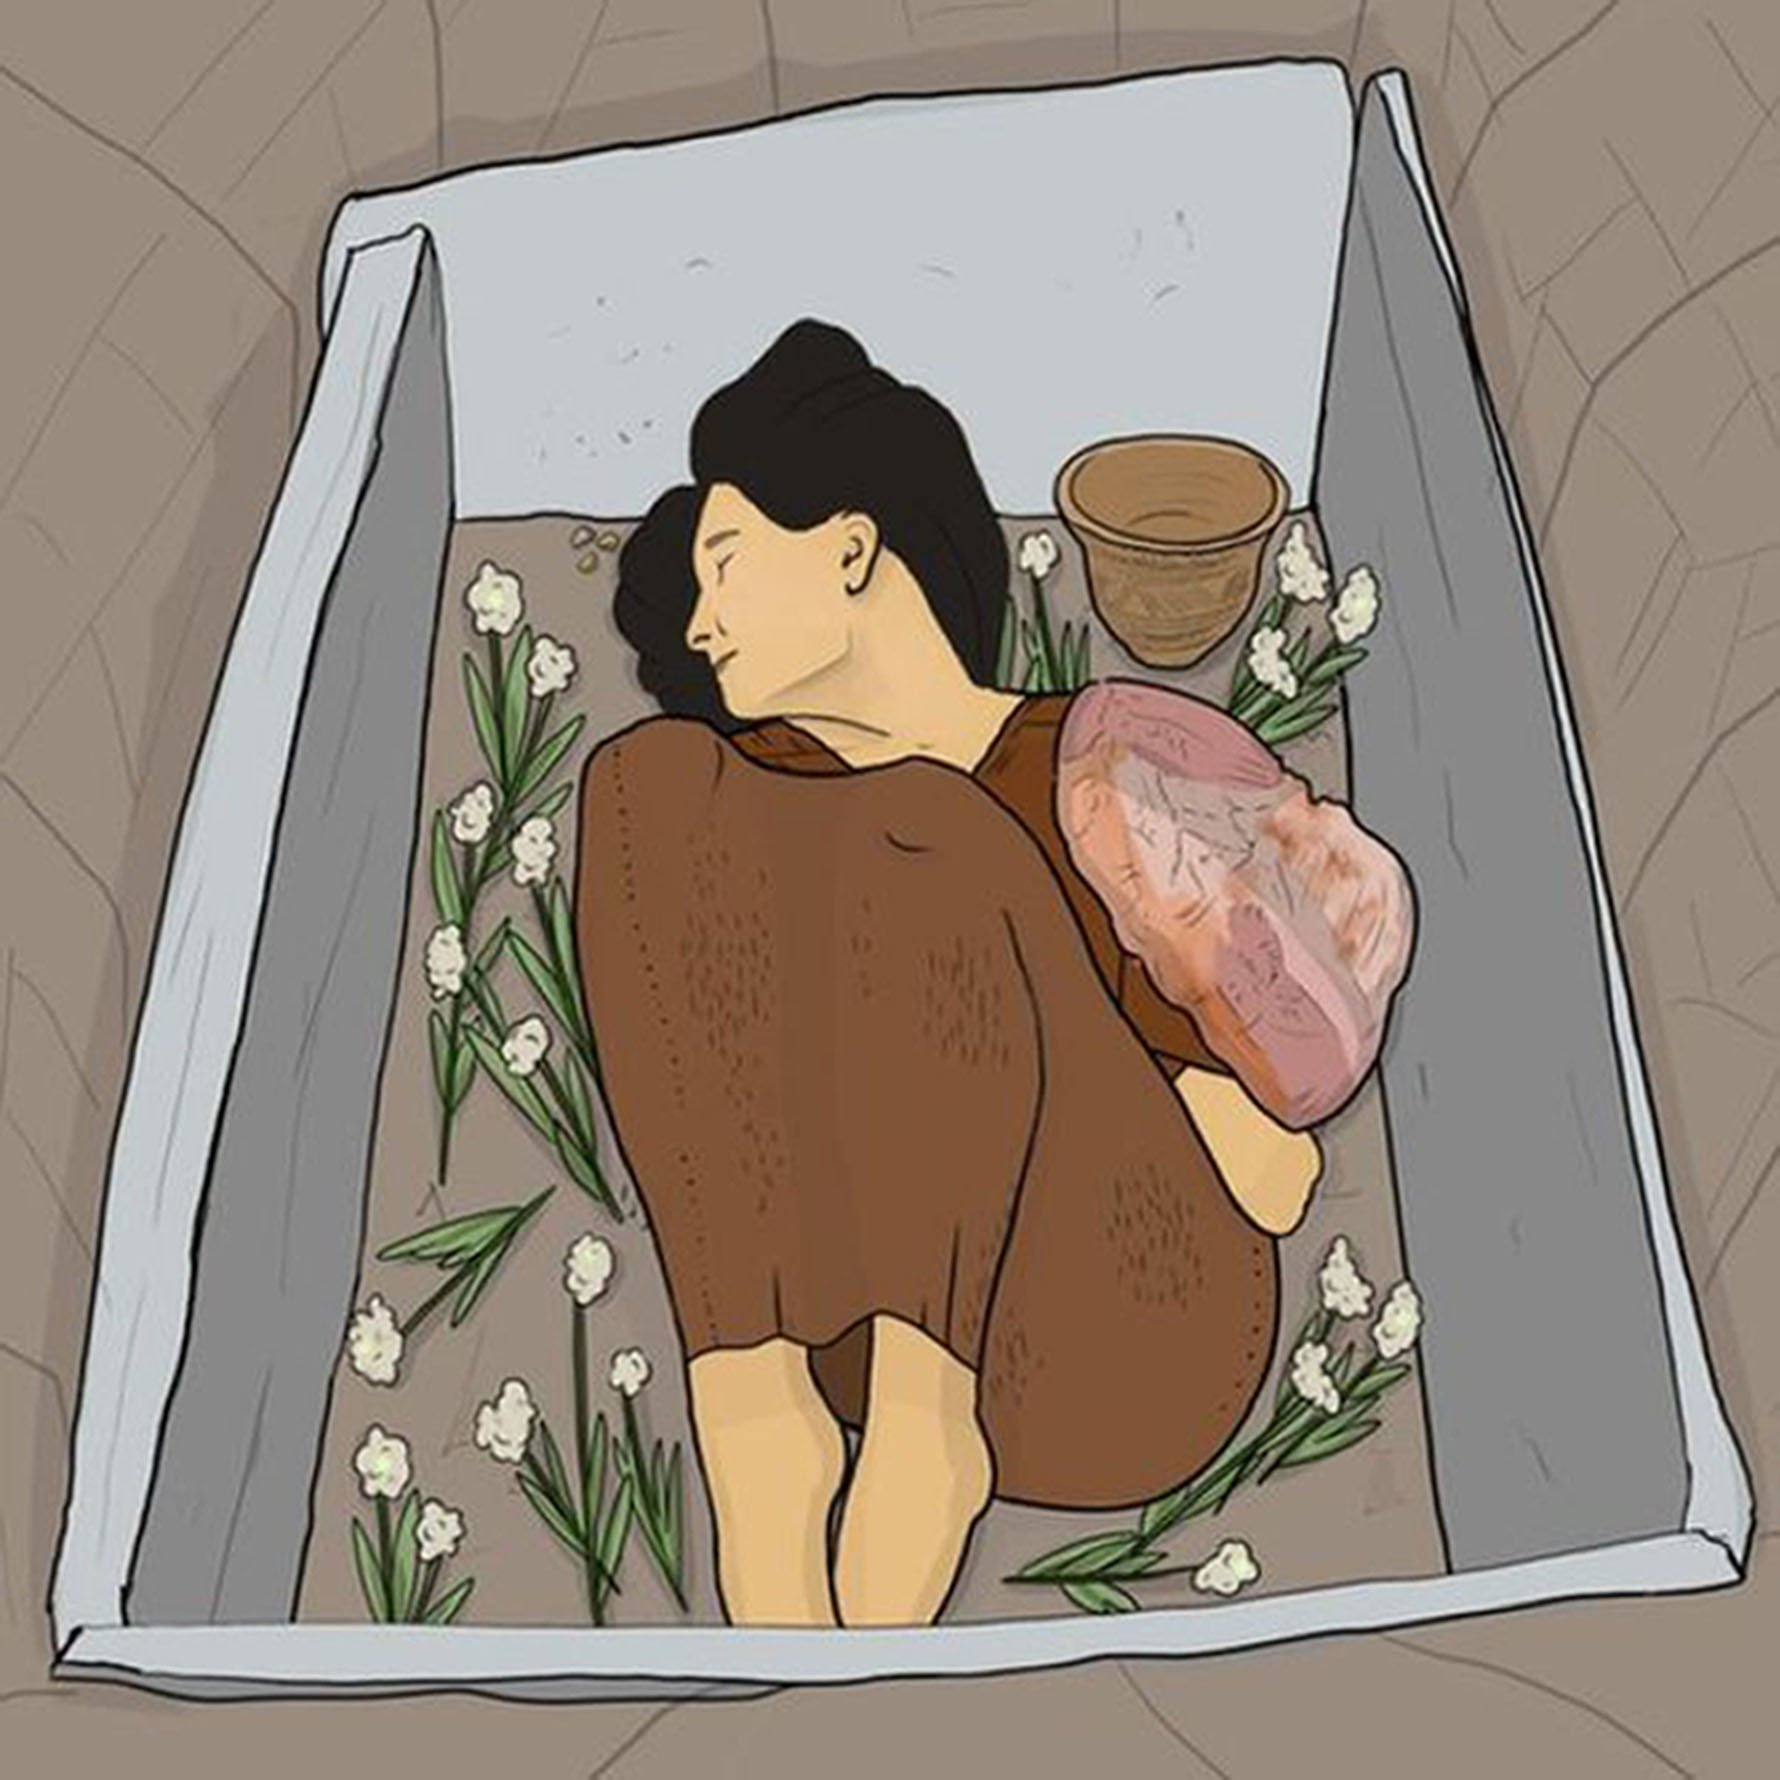 """Ava's burial in grave cut from solid rock - Researchers have gained new insights into the life of a woman who died more than 4,250 years ago. Known as """"Ava"""", her bones were found in a grave cut into solid bedrock at Achavanich in Caithness in 1987. New ancient DNA research has shown that she was descended from European migrants who arrived in Britain a few generations before she was born. The analysis also suggested that she likely had brown eyes and black hair, and that she was lactose intolerant. The research, published in Proceedings of the Society of Antiquaries of Scotland and led by archaeologist Maya Hoole, has shed new light on previous ideas on Ava's appearance. She was found to be from an earlier date than previously thought. The new analysis of her genomic data has resulted in the making of a new facial reconstruction of Ava by a forensic artist, Hew Morrison. The original reconstruction interpreted Ava with red hair and blue eyes. Ms Hoole said the new ancient DNA evidence, gathered by experts at the Natural History Museum in London and Harvard Medical School, had revealed more accurately what Ava would have looked like. She said: """"Archaeologists rarely recover evidence that indicates hair, eye or skin colour but these new revolutionary techniques allow us to see prehistoric people like we never have before. """"The revelation that her ancestors were recent northern European migrants is exciting, especially as we know that she has no, or very few, genetic connections with the local Neolithic population who resided in Caithness before her."""" Picture: Maya Hoole/Universal News And Sport (Scotland) 03/12/2018"""